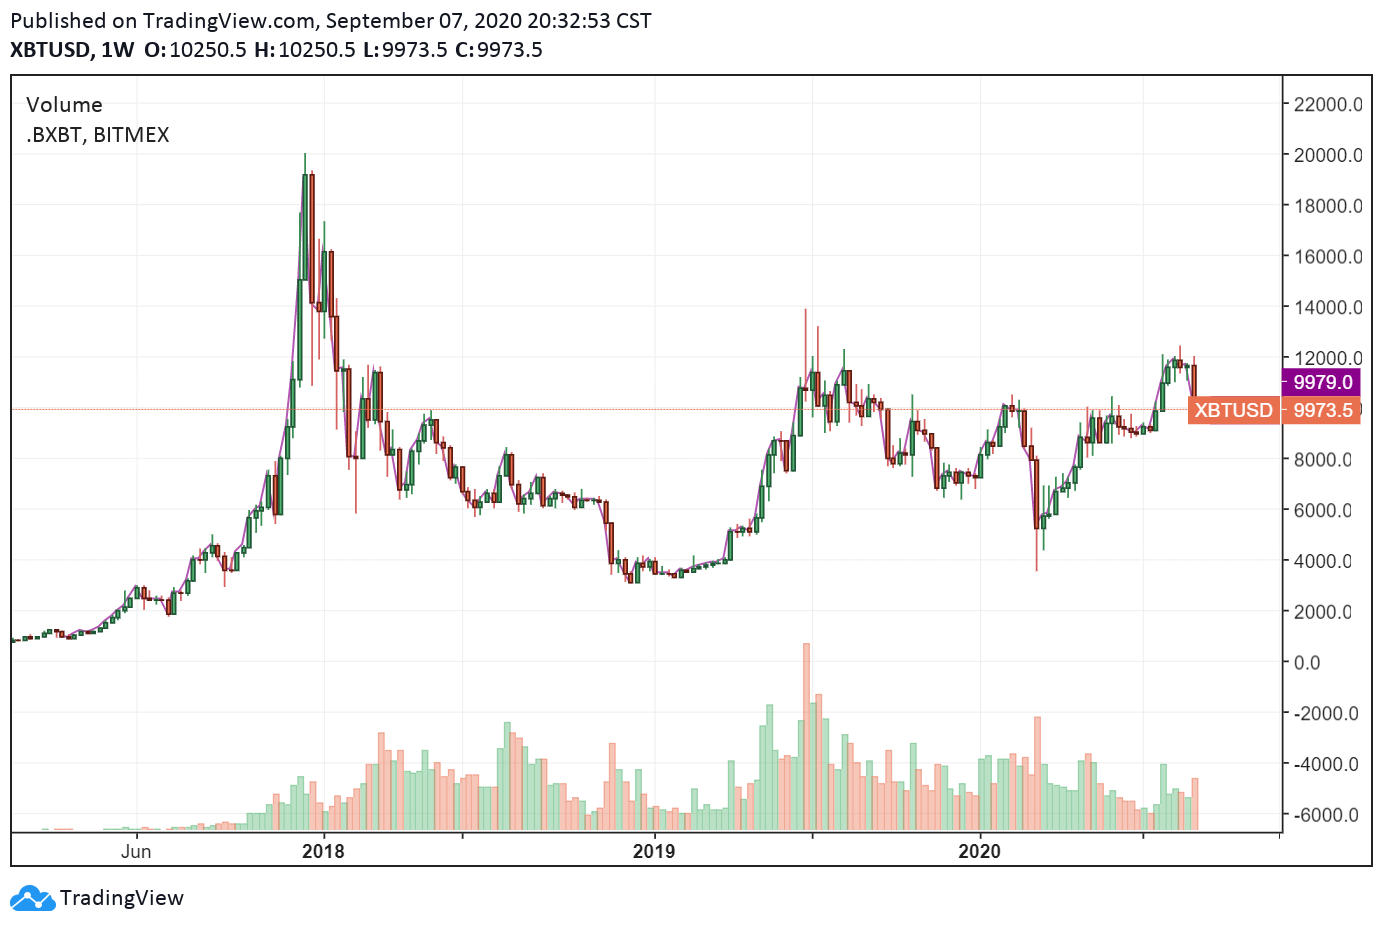 The weekly chart of Bitcoin